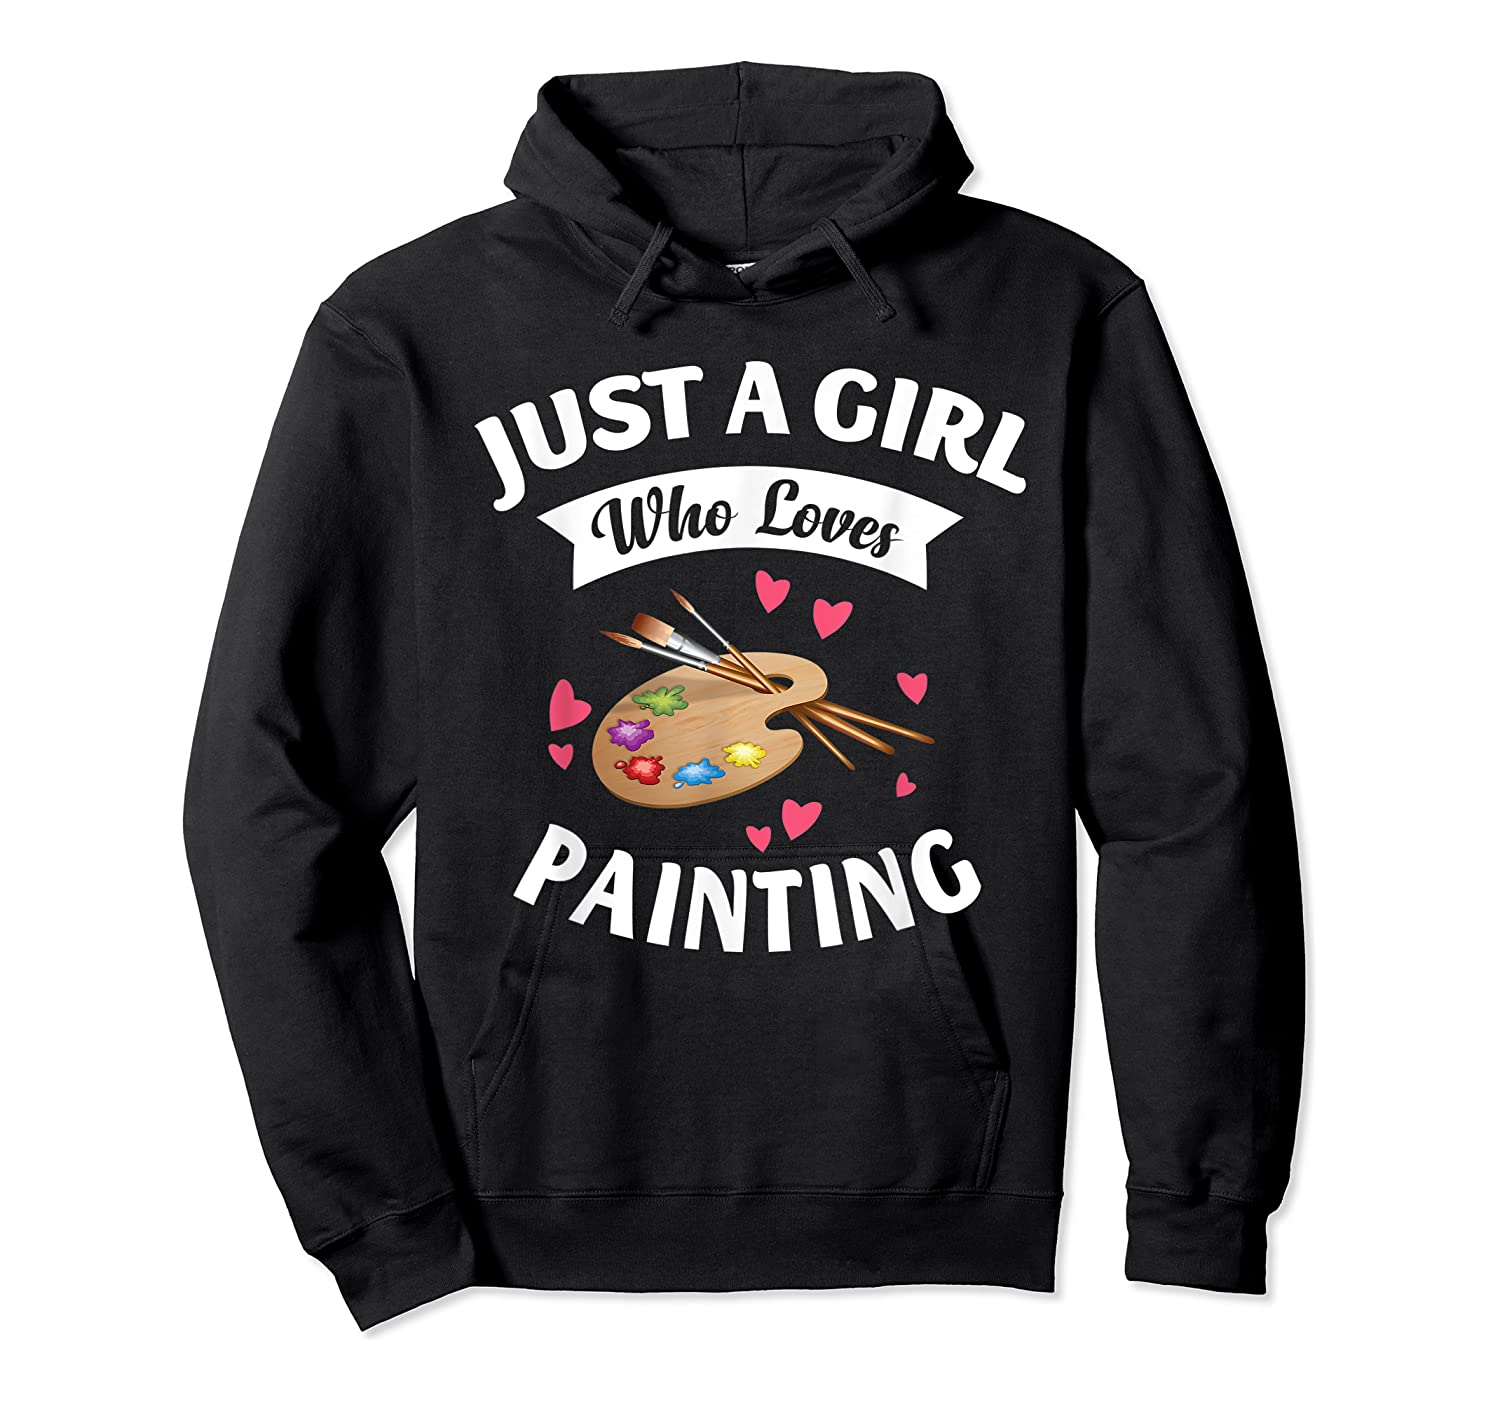 Just A Girl Who Loves Painting, Art Lovers Girls Shirts Unisex Pullover Hoodie